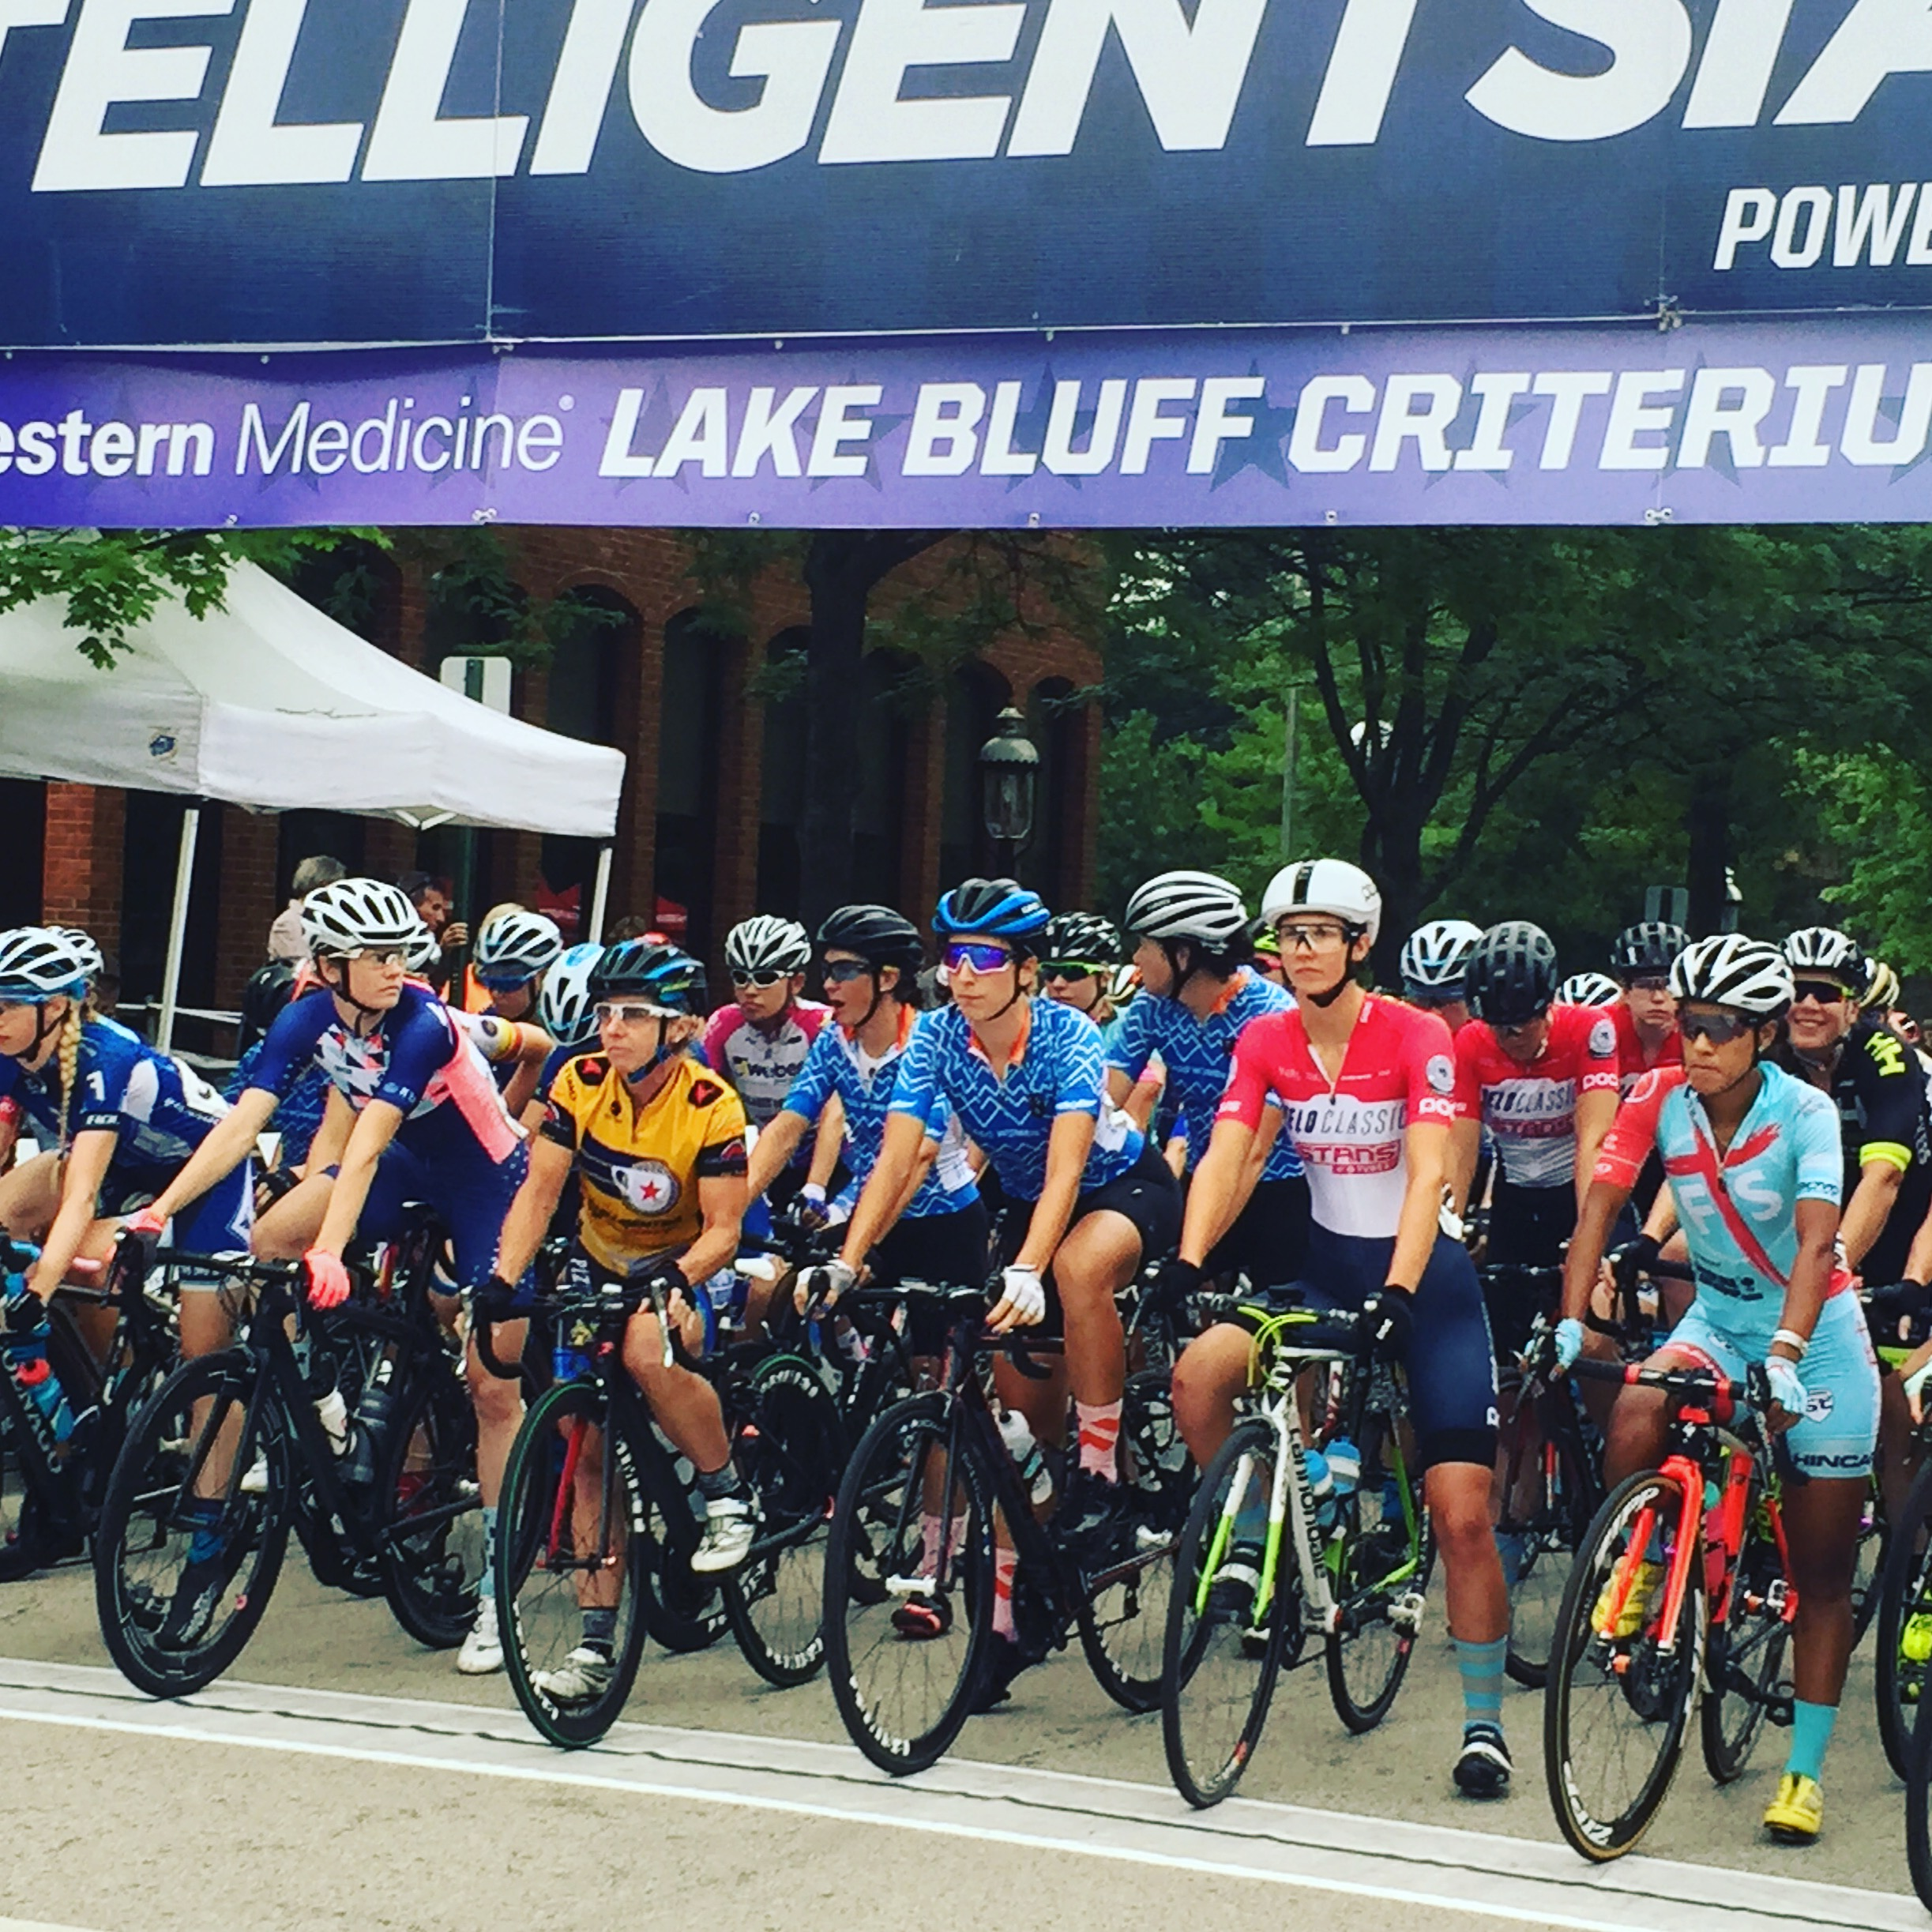 The Pro 1/2 Women lined up at the start of Lake Bluff Criterium at Intelligensia Cup in Chicago, IL. ALP Cycles Coaching athlete Daphne Karagianis of Chicago Women's Elite finished third in the omnium.